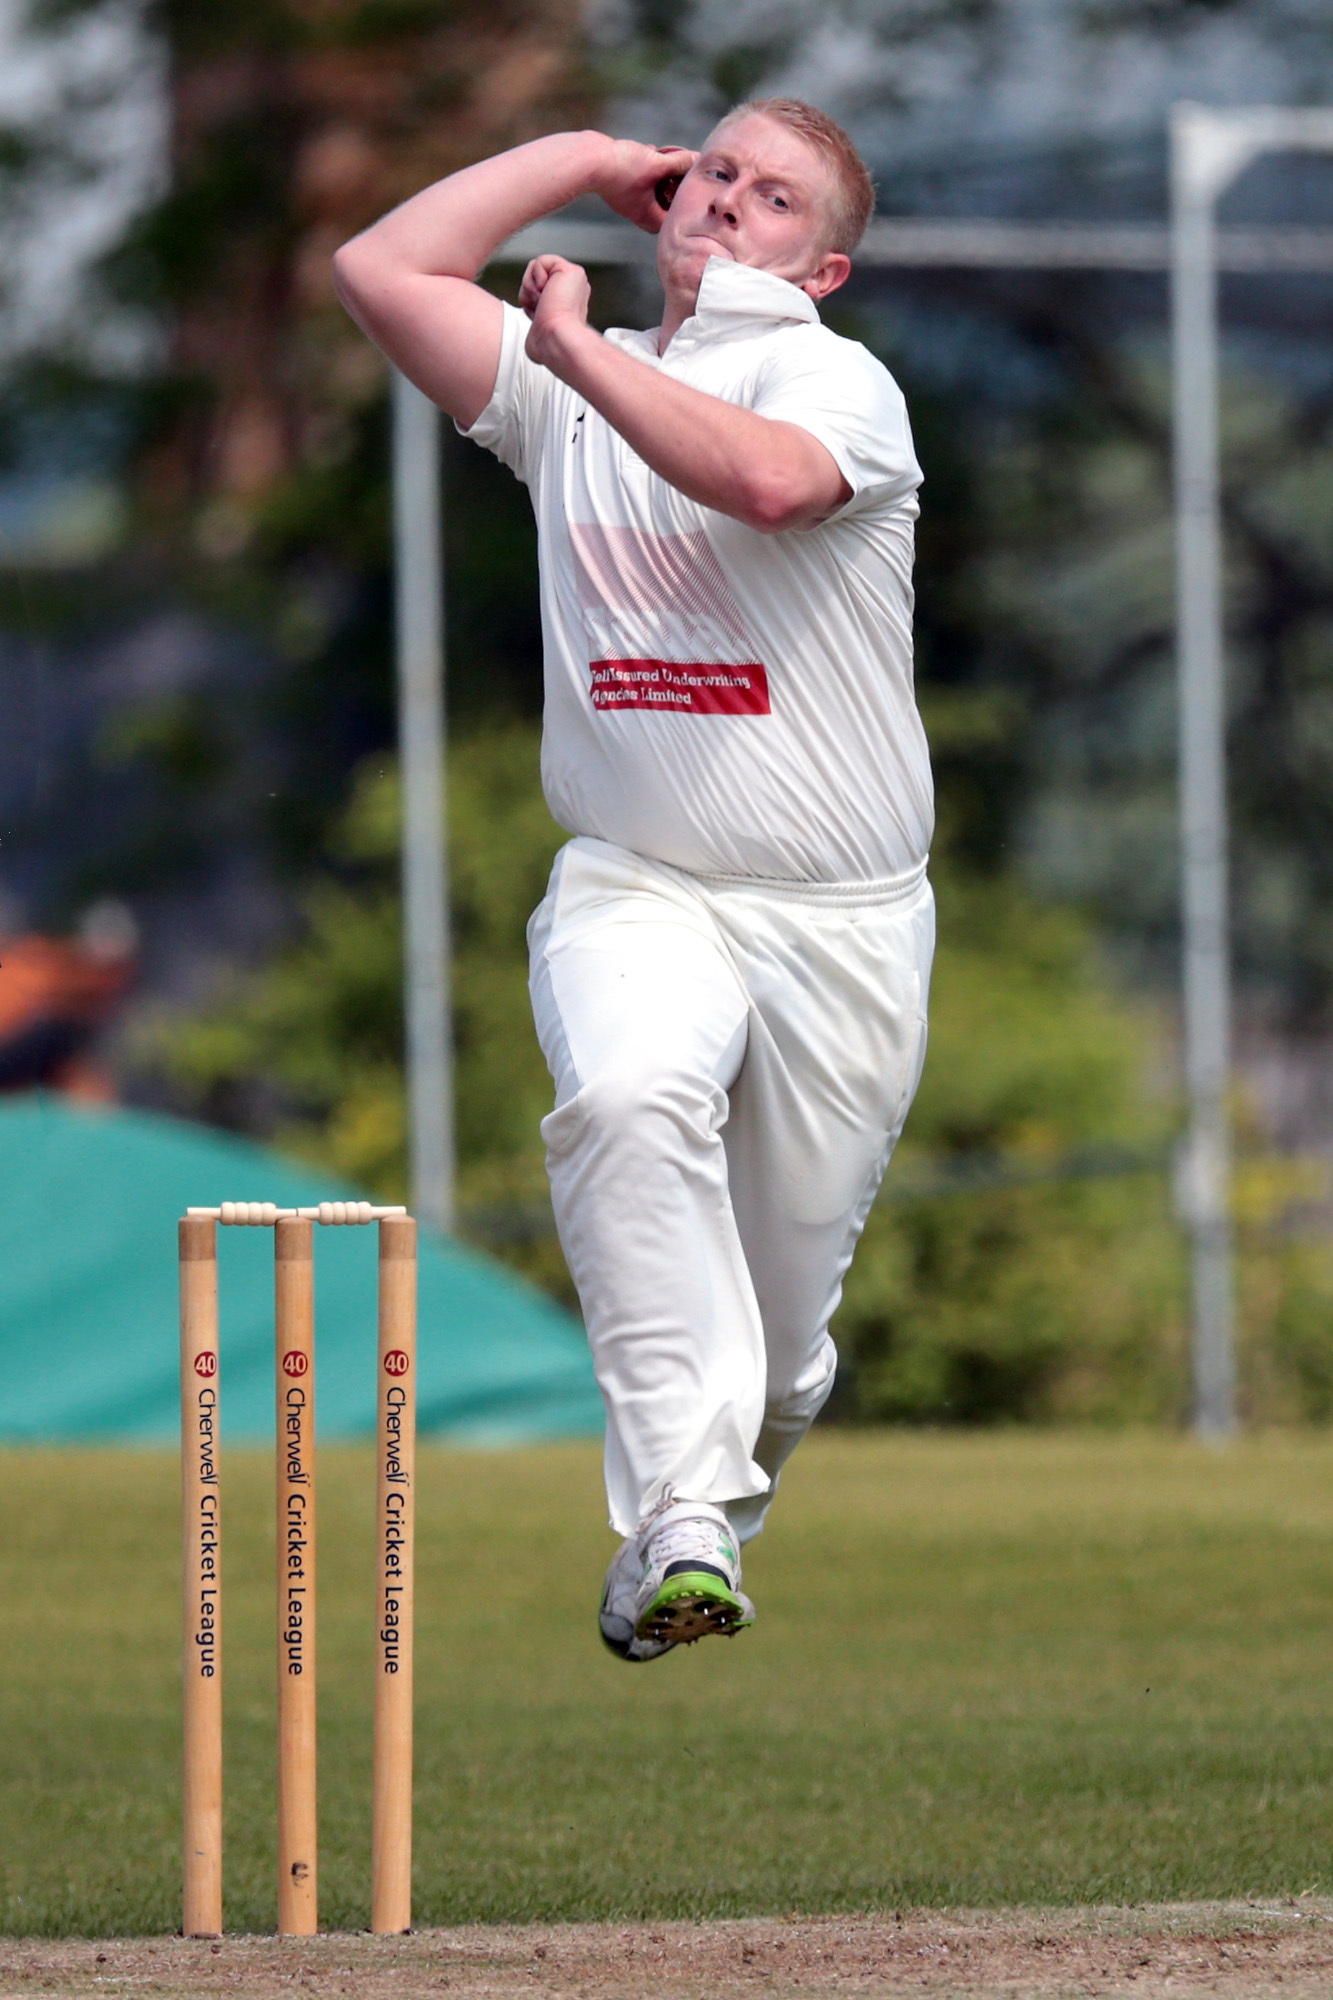 FINE DEBUT: Robbie Shurmer took four wickets for Oxfordshire